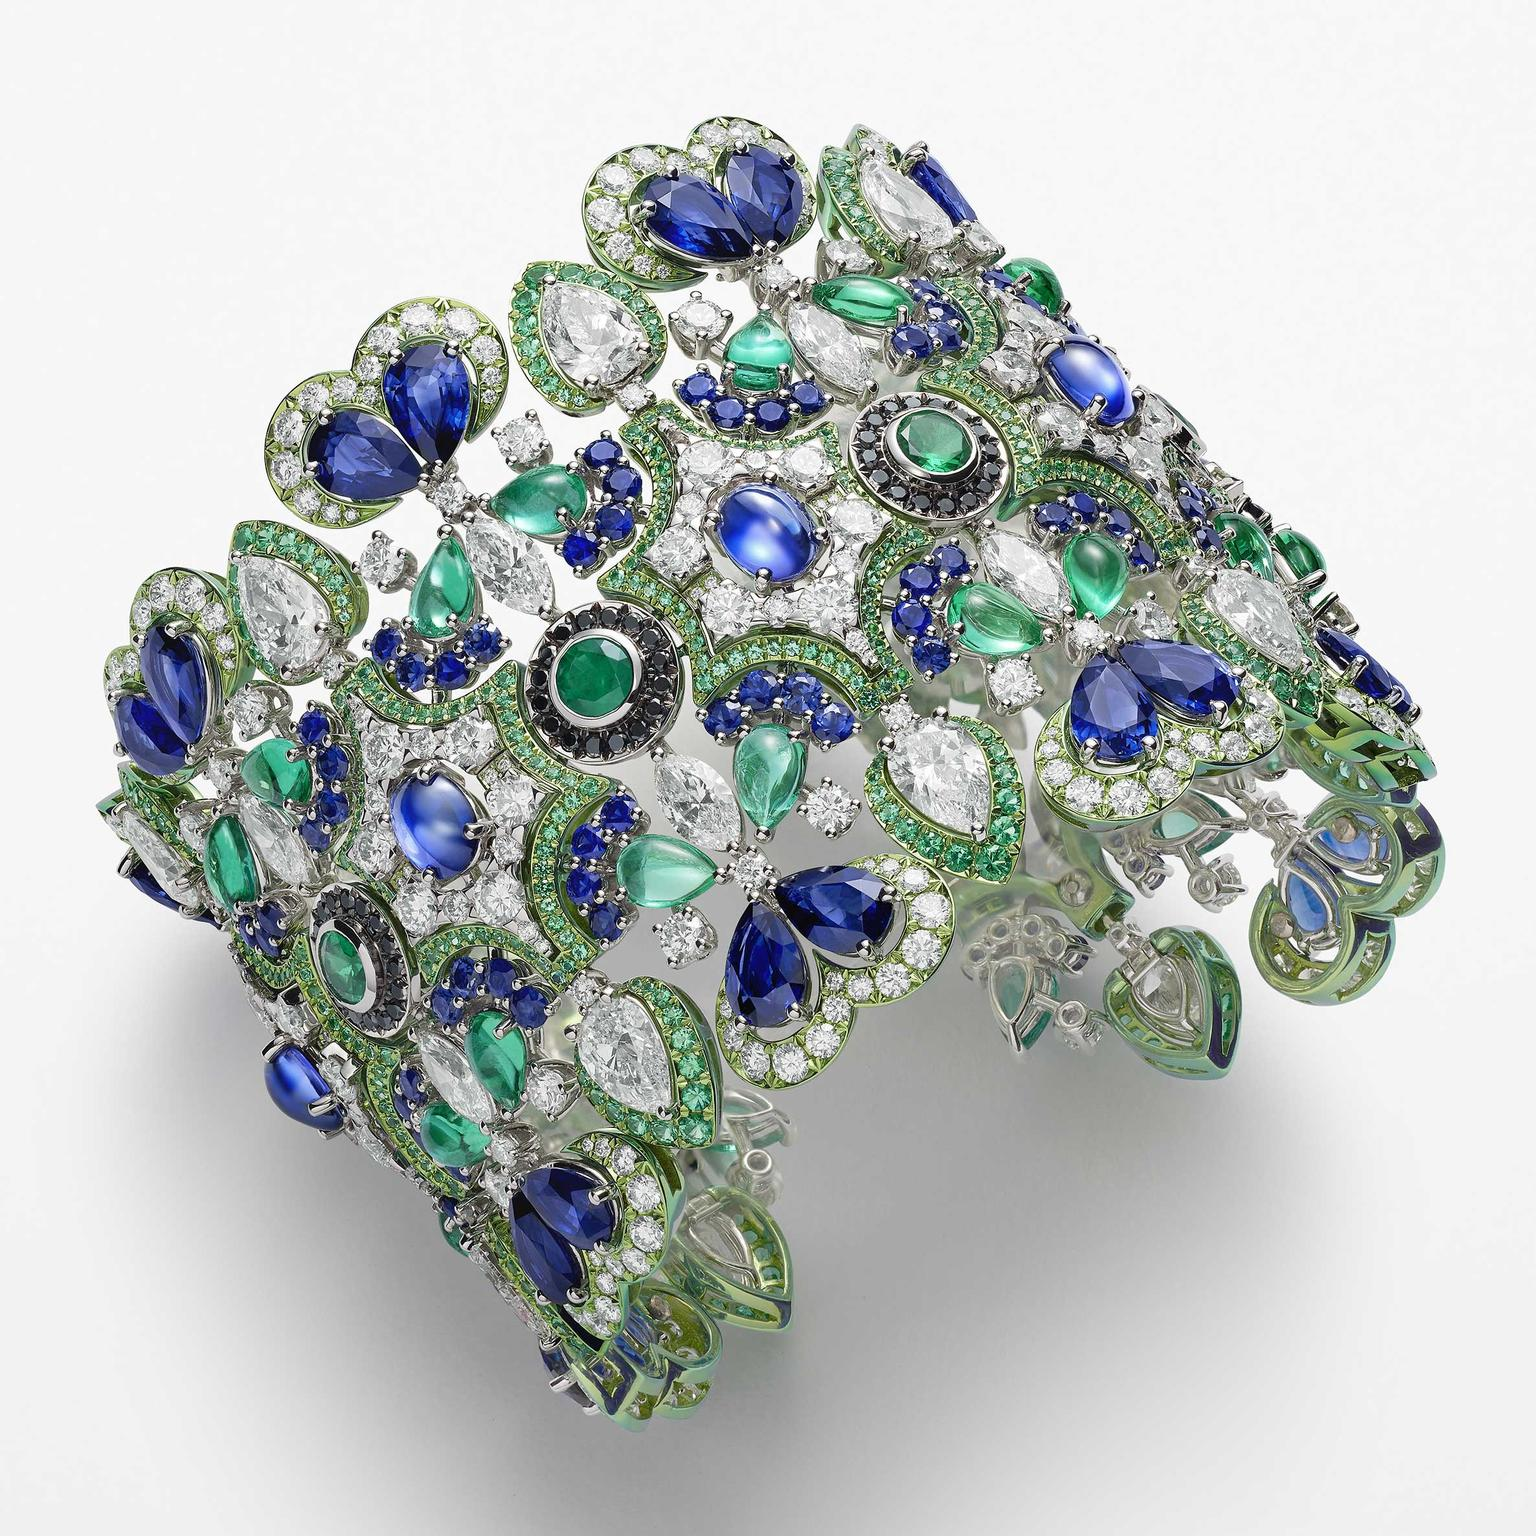 Chopard bracelet from Red Carpet collection 2018